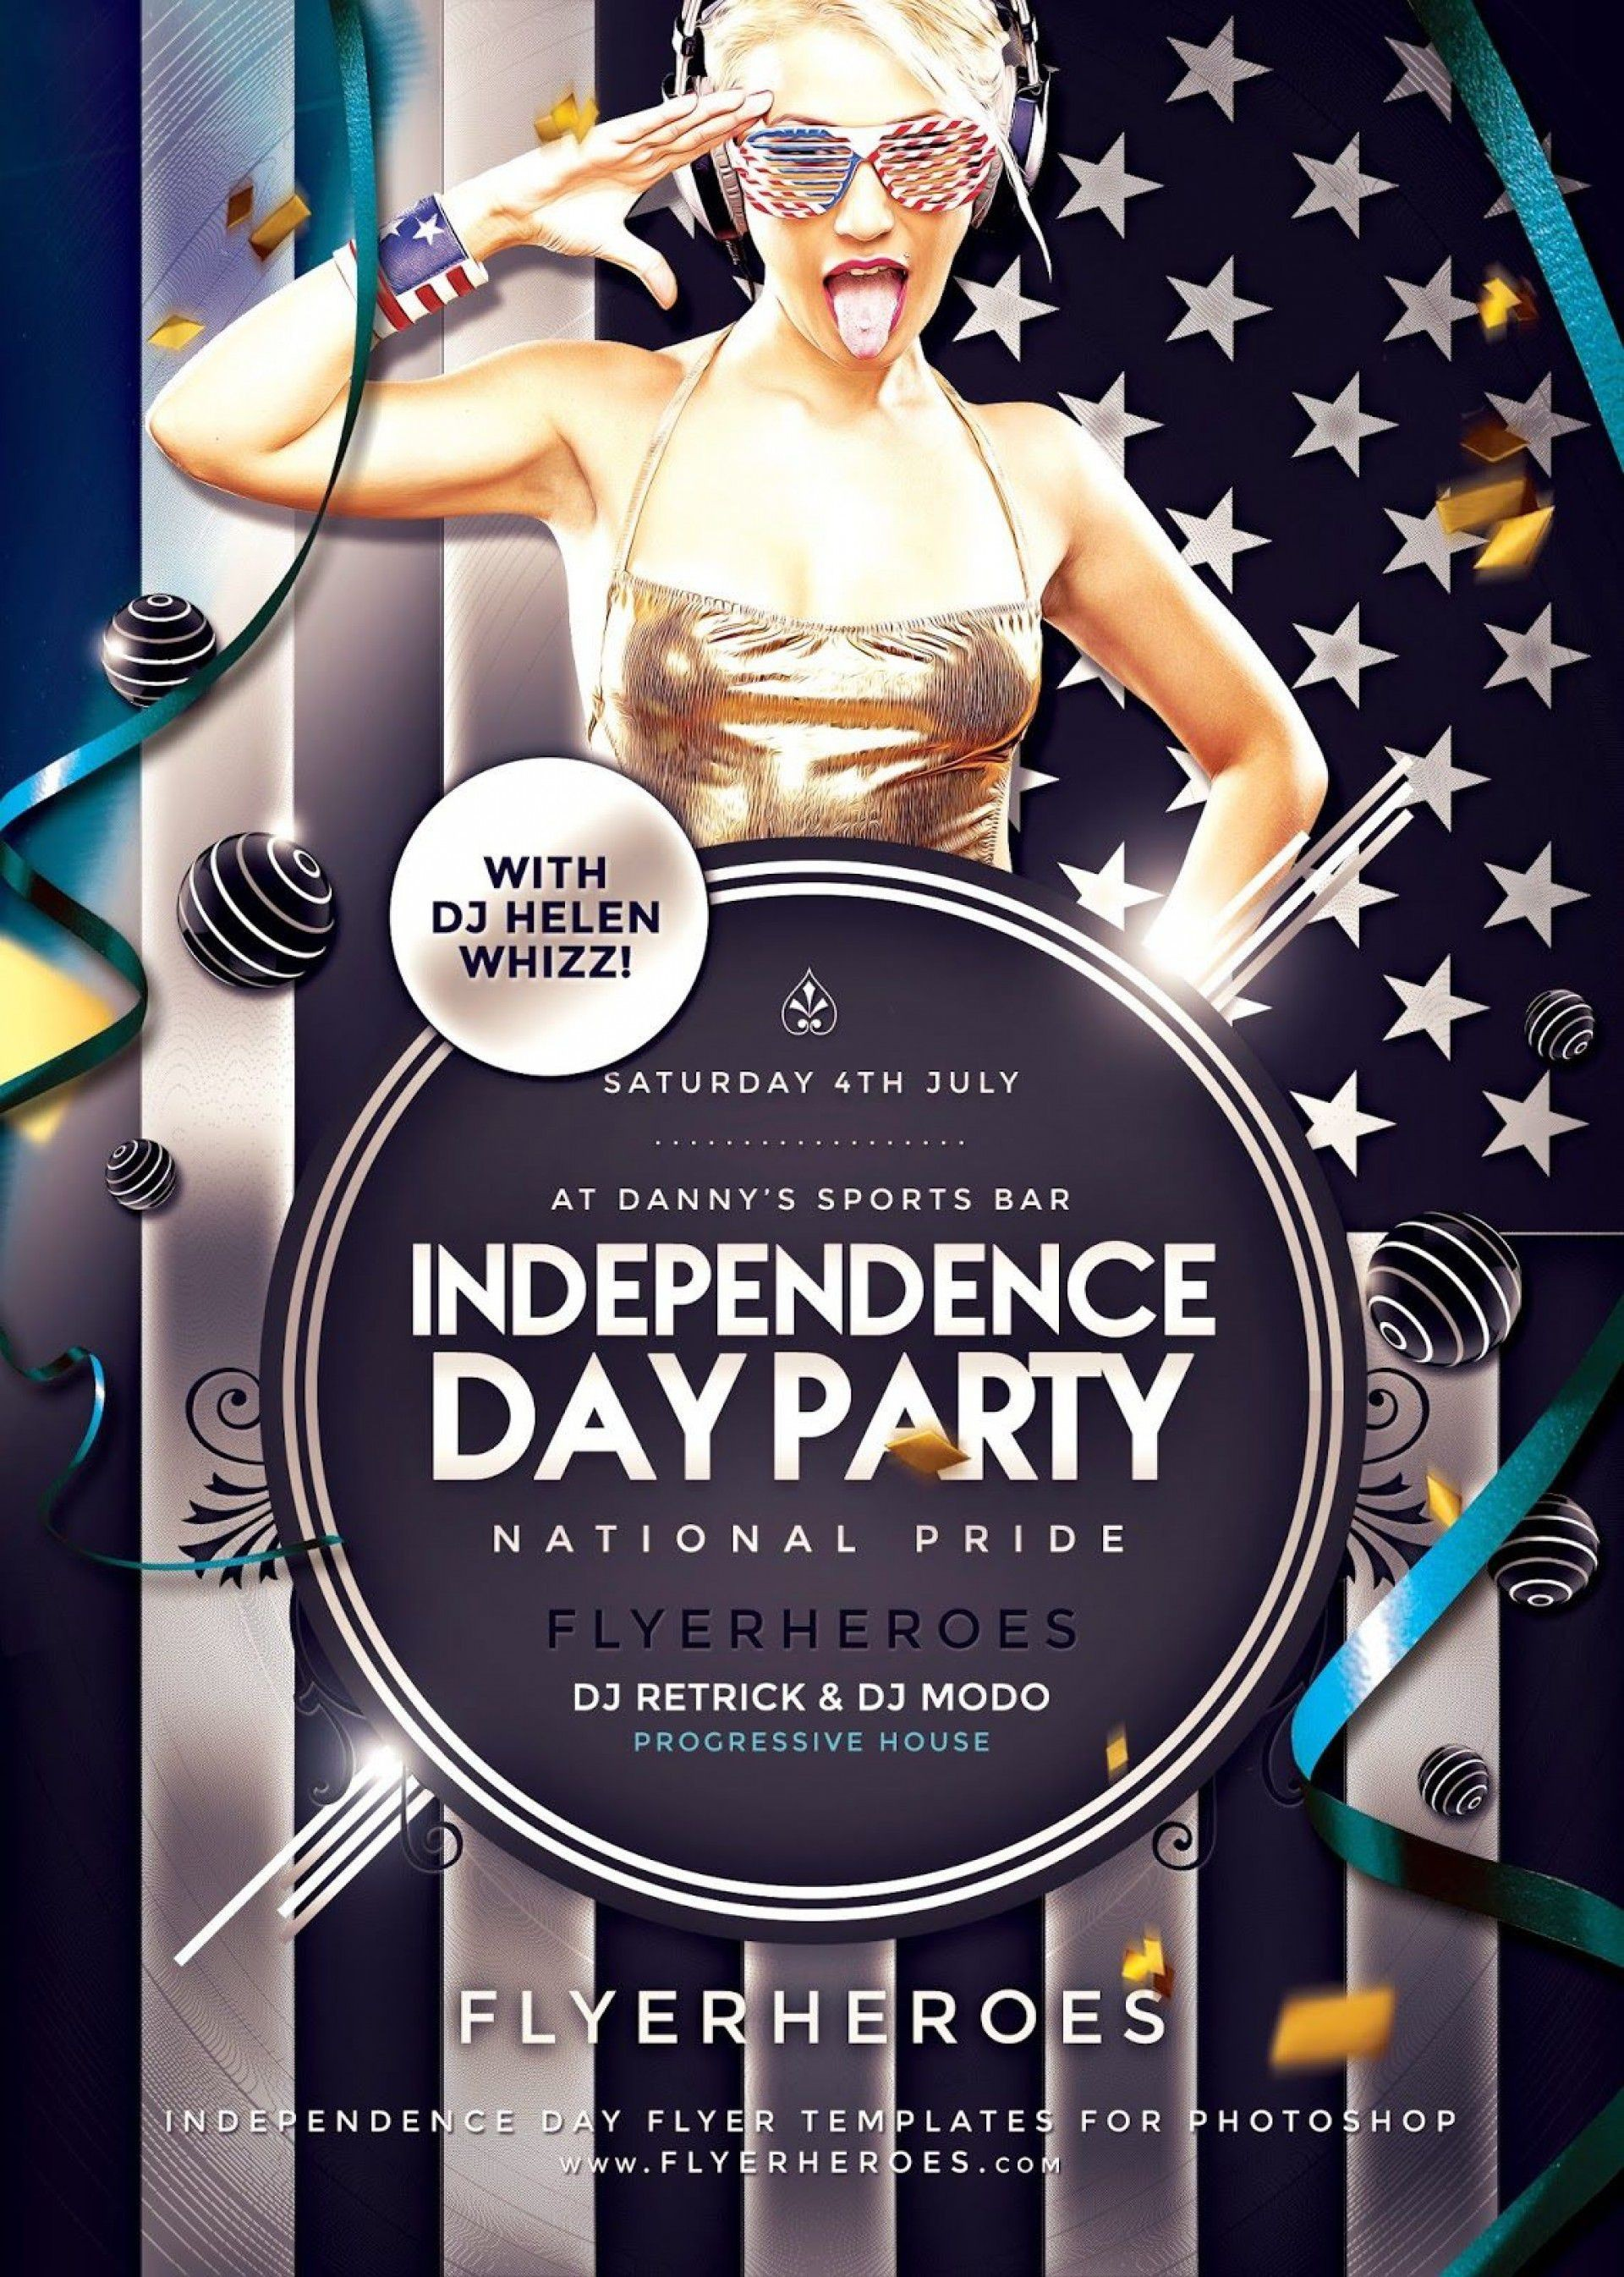 002 Imposing Free Party Flyer Template For Mac Design 1920